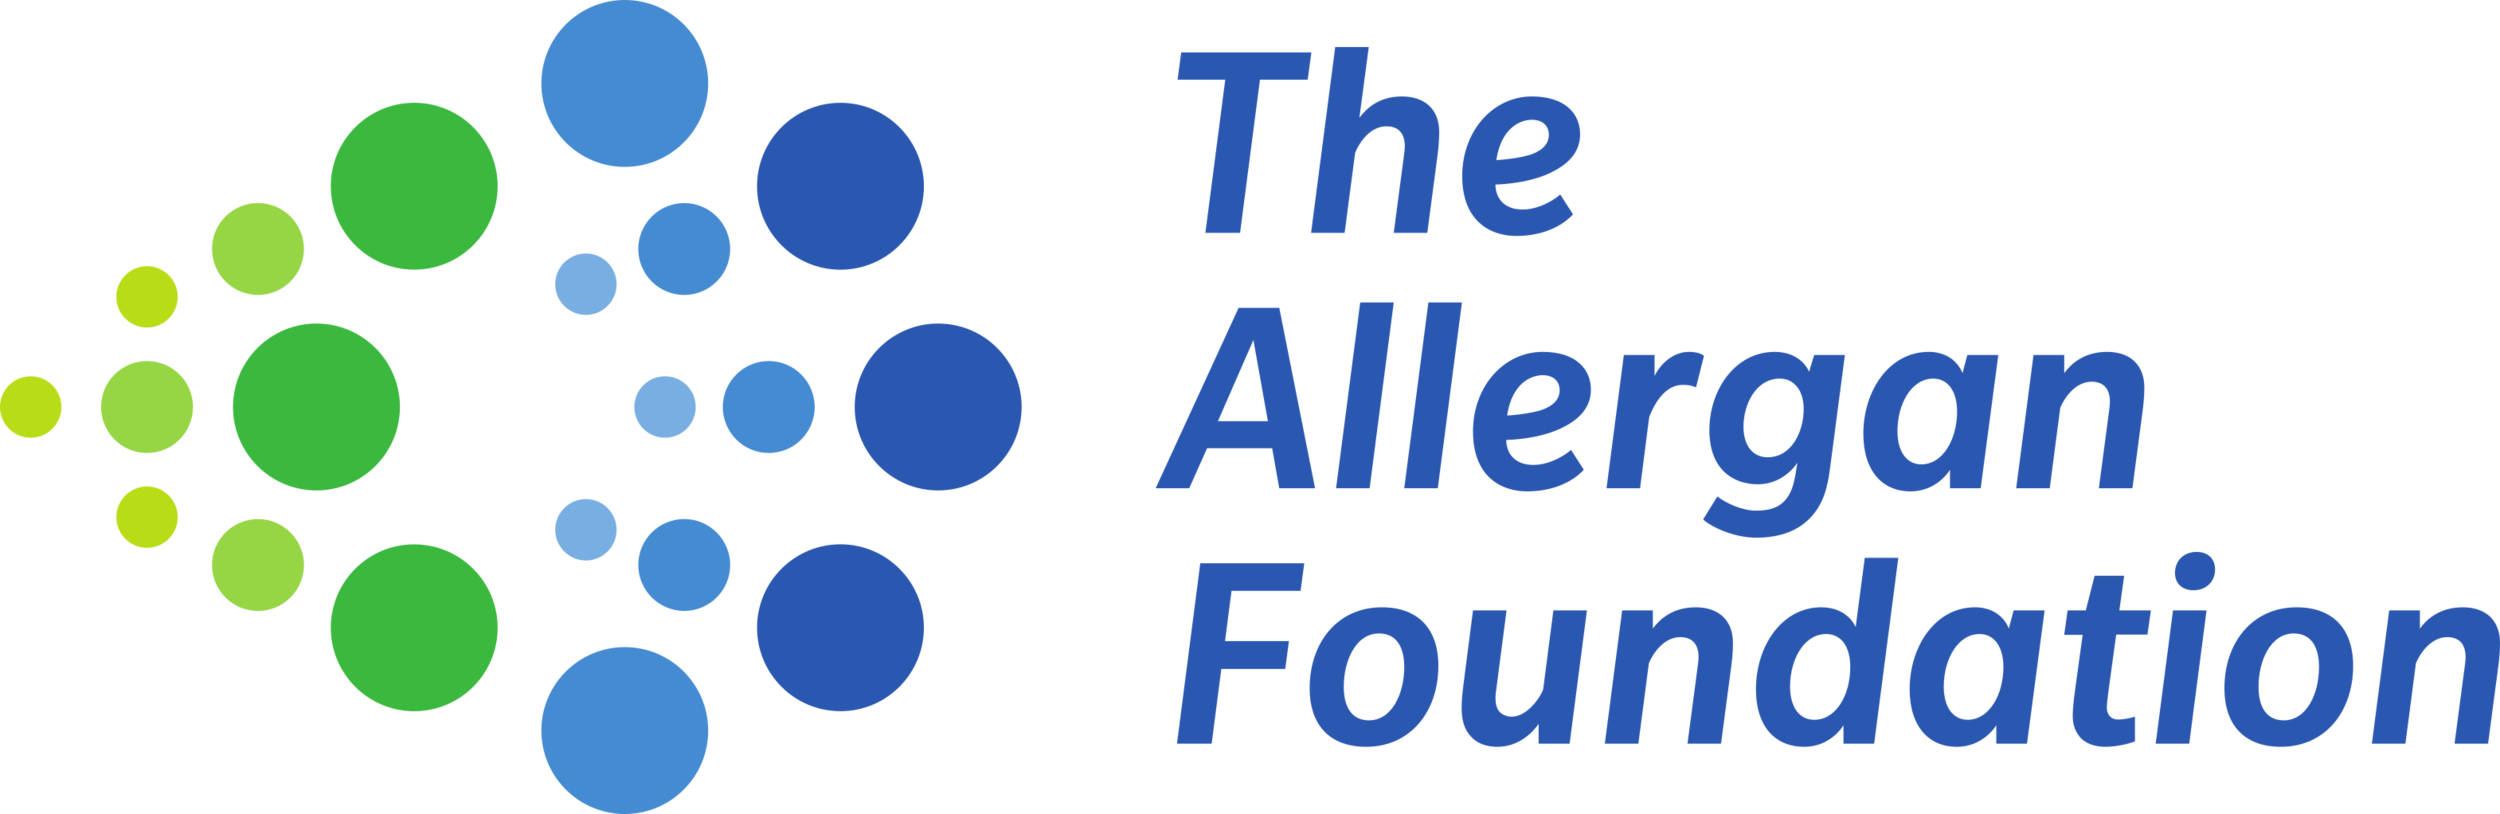 The Allergan Foundation is a U.S.-based, private charitable foundation committed to making a Bold, positive, and lasting impact in the communities in which Allergan, plc. employees work and live. The Allergan Foundation is particularly focused on supporting programs that improve the health and well-being of our communities, including better patient diagnosis, treatment, care and quality of life, especially for those patients who are most in need.